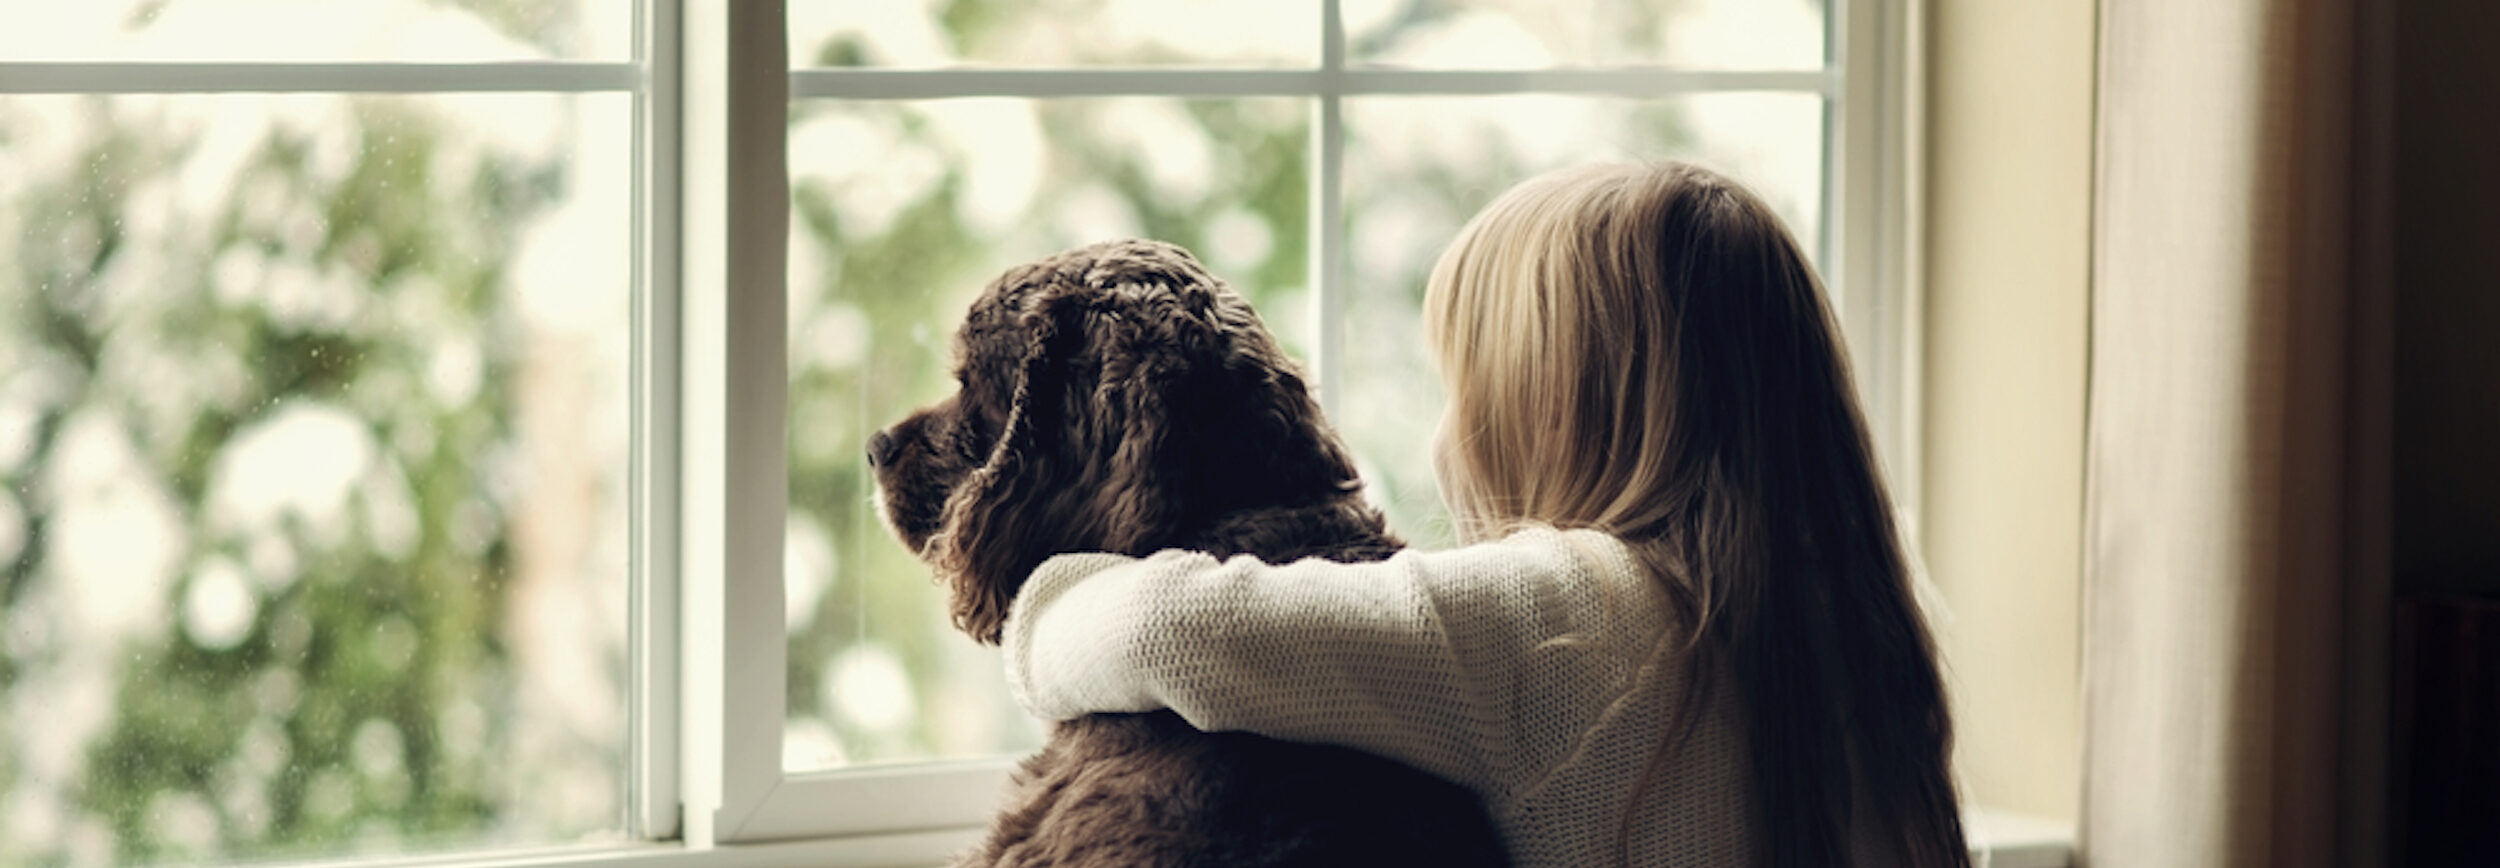 Girl Sitting Next To Dog While Looking Out The Window In Winter